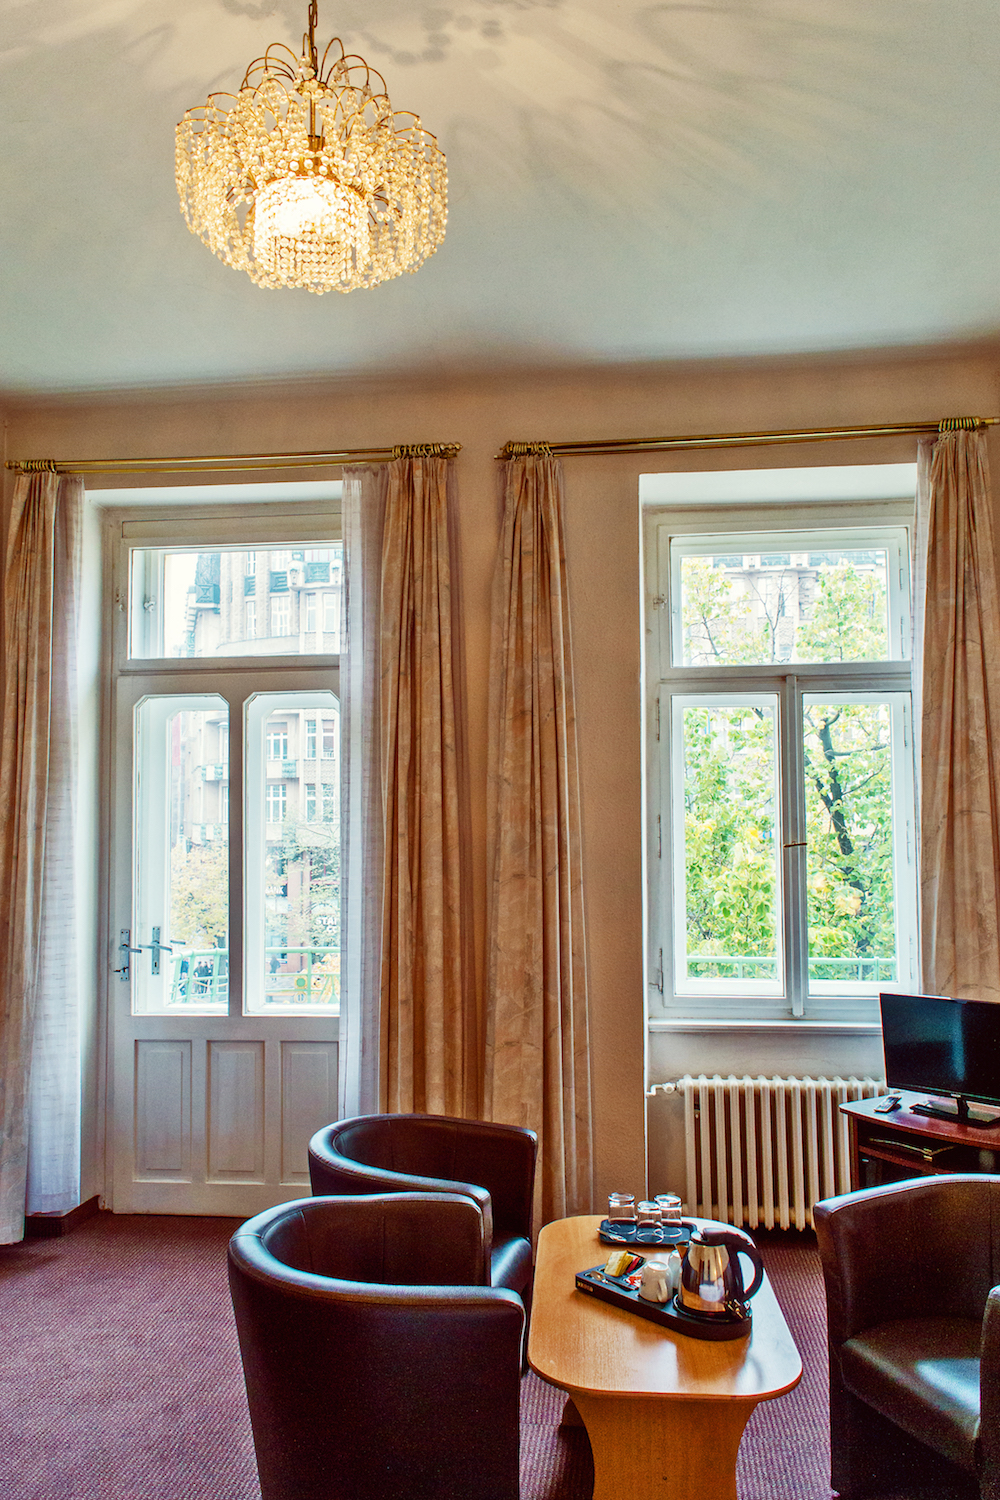 Hotel Meran | Prague 1 | Photos 21